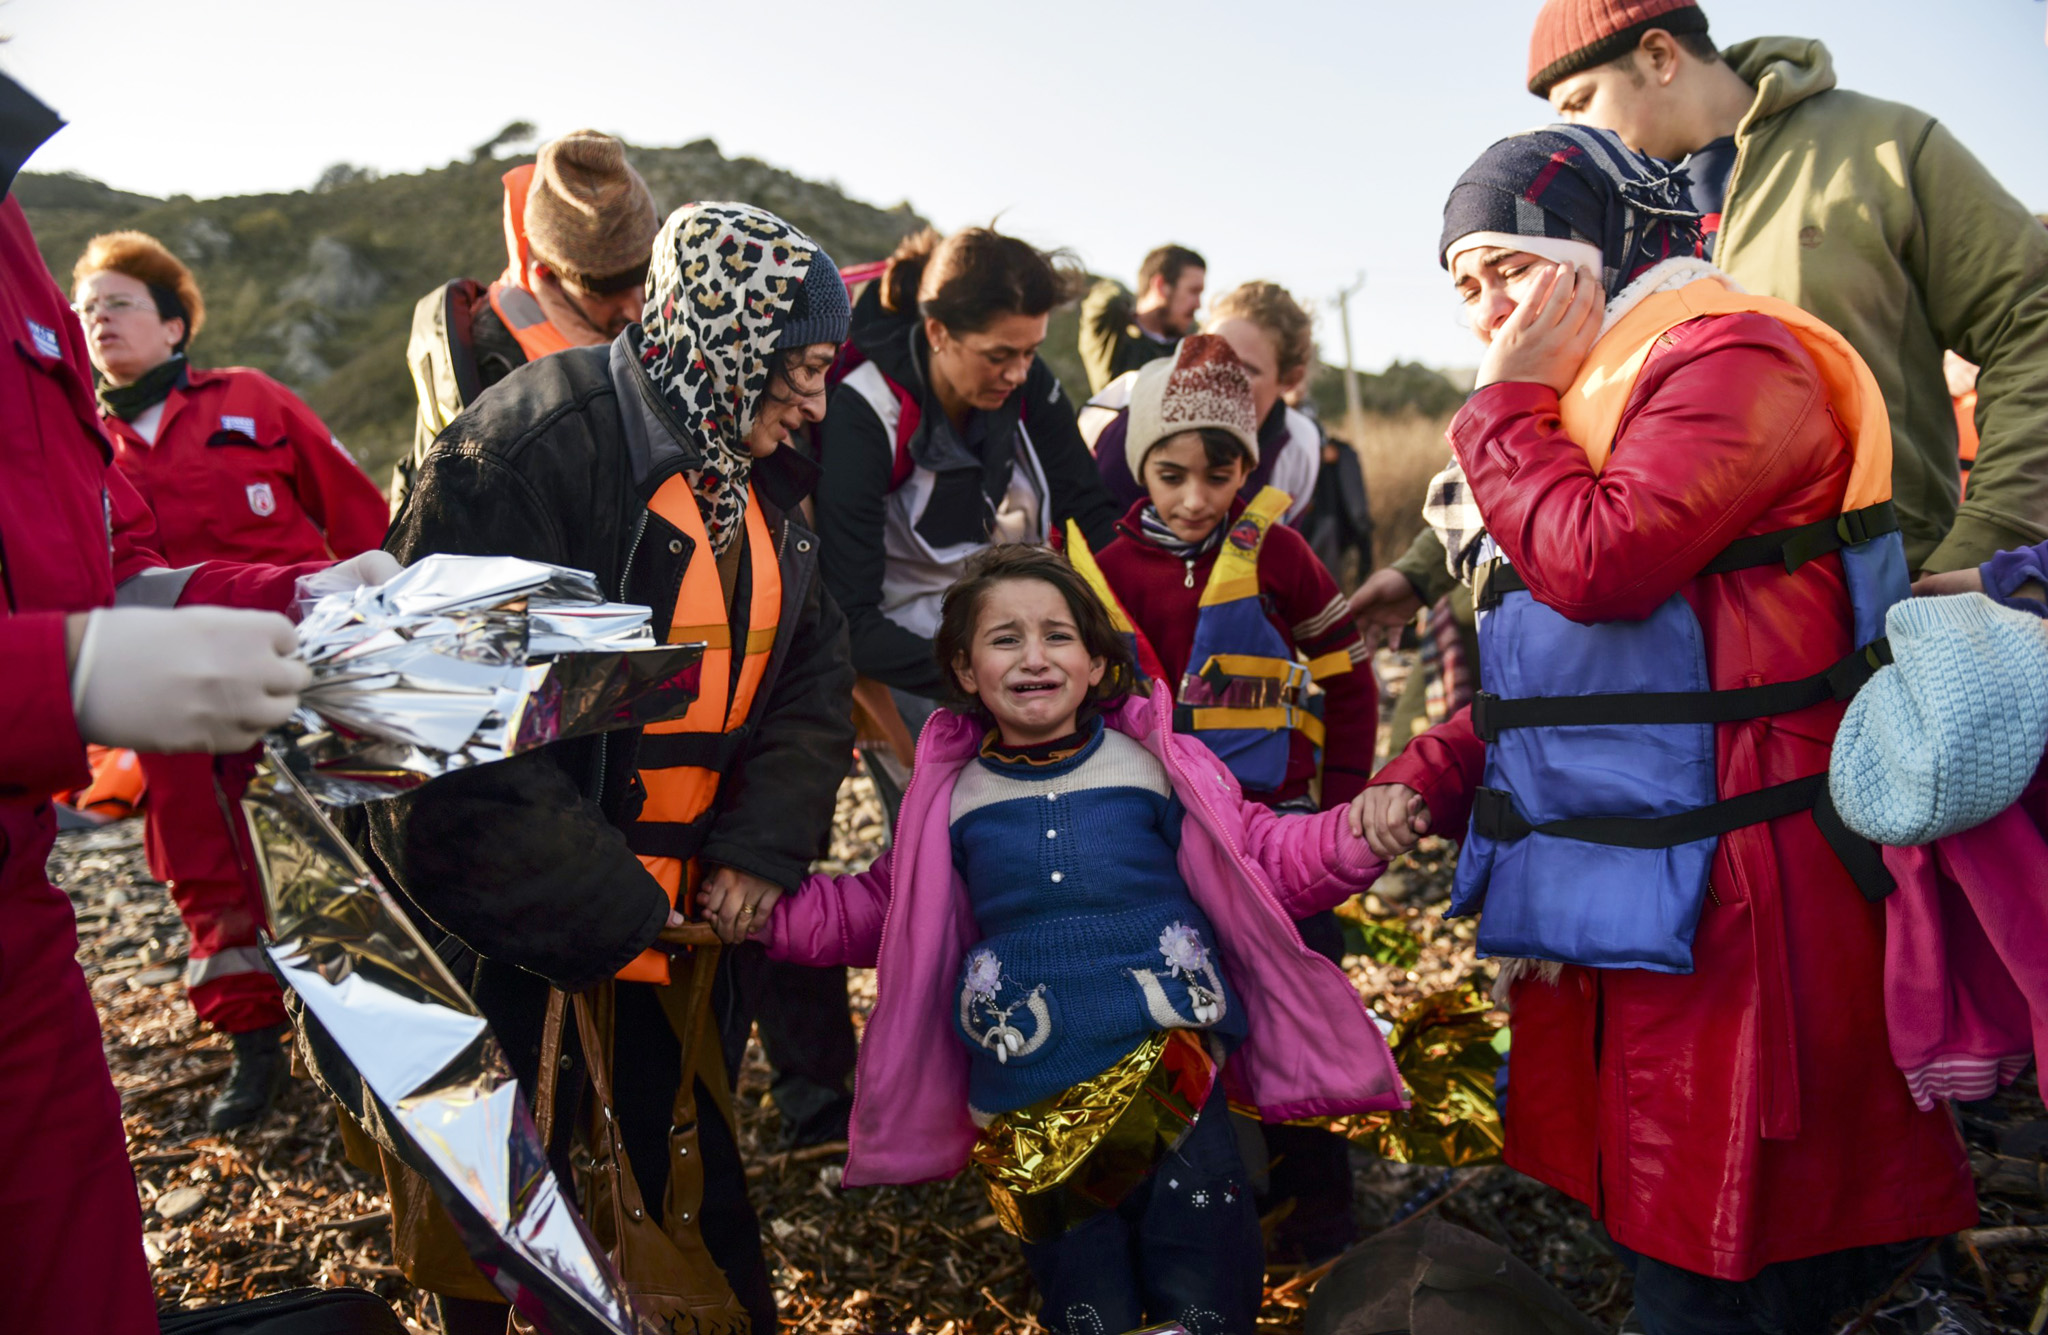 Migrants and refugees receive help after...Migrants and refugees receive help after their arrival on the Greek island of Lesbos after crossing the Aegean Sea from Turkey on November 17, 2015. European leaders tried to focus on joint action with Africa to tackle the migration crisis, as Slovenia became the latest EU member to act on its own by barricading its border. AFP PHOTO/BULENT KILICBULENT KILIC/AFP/Getty Images